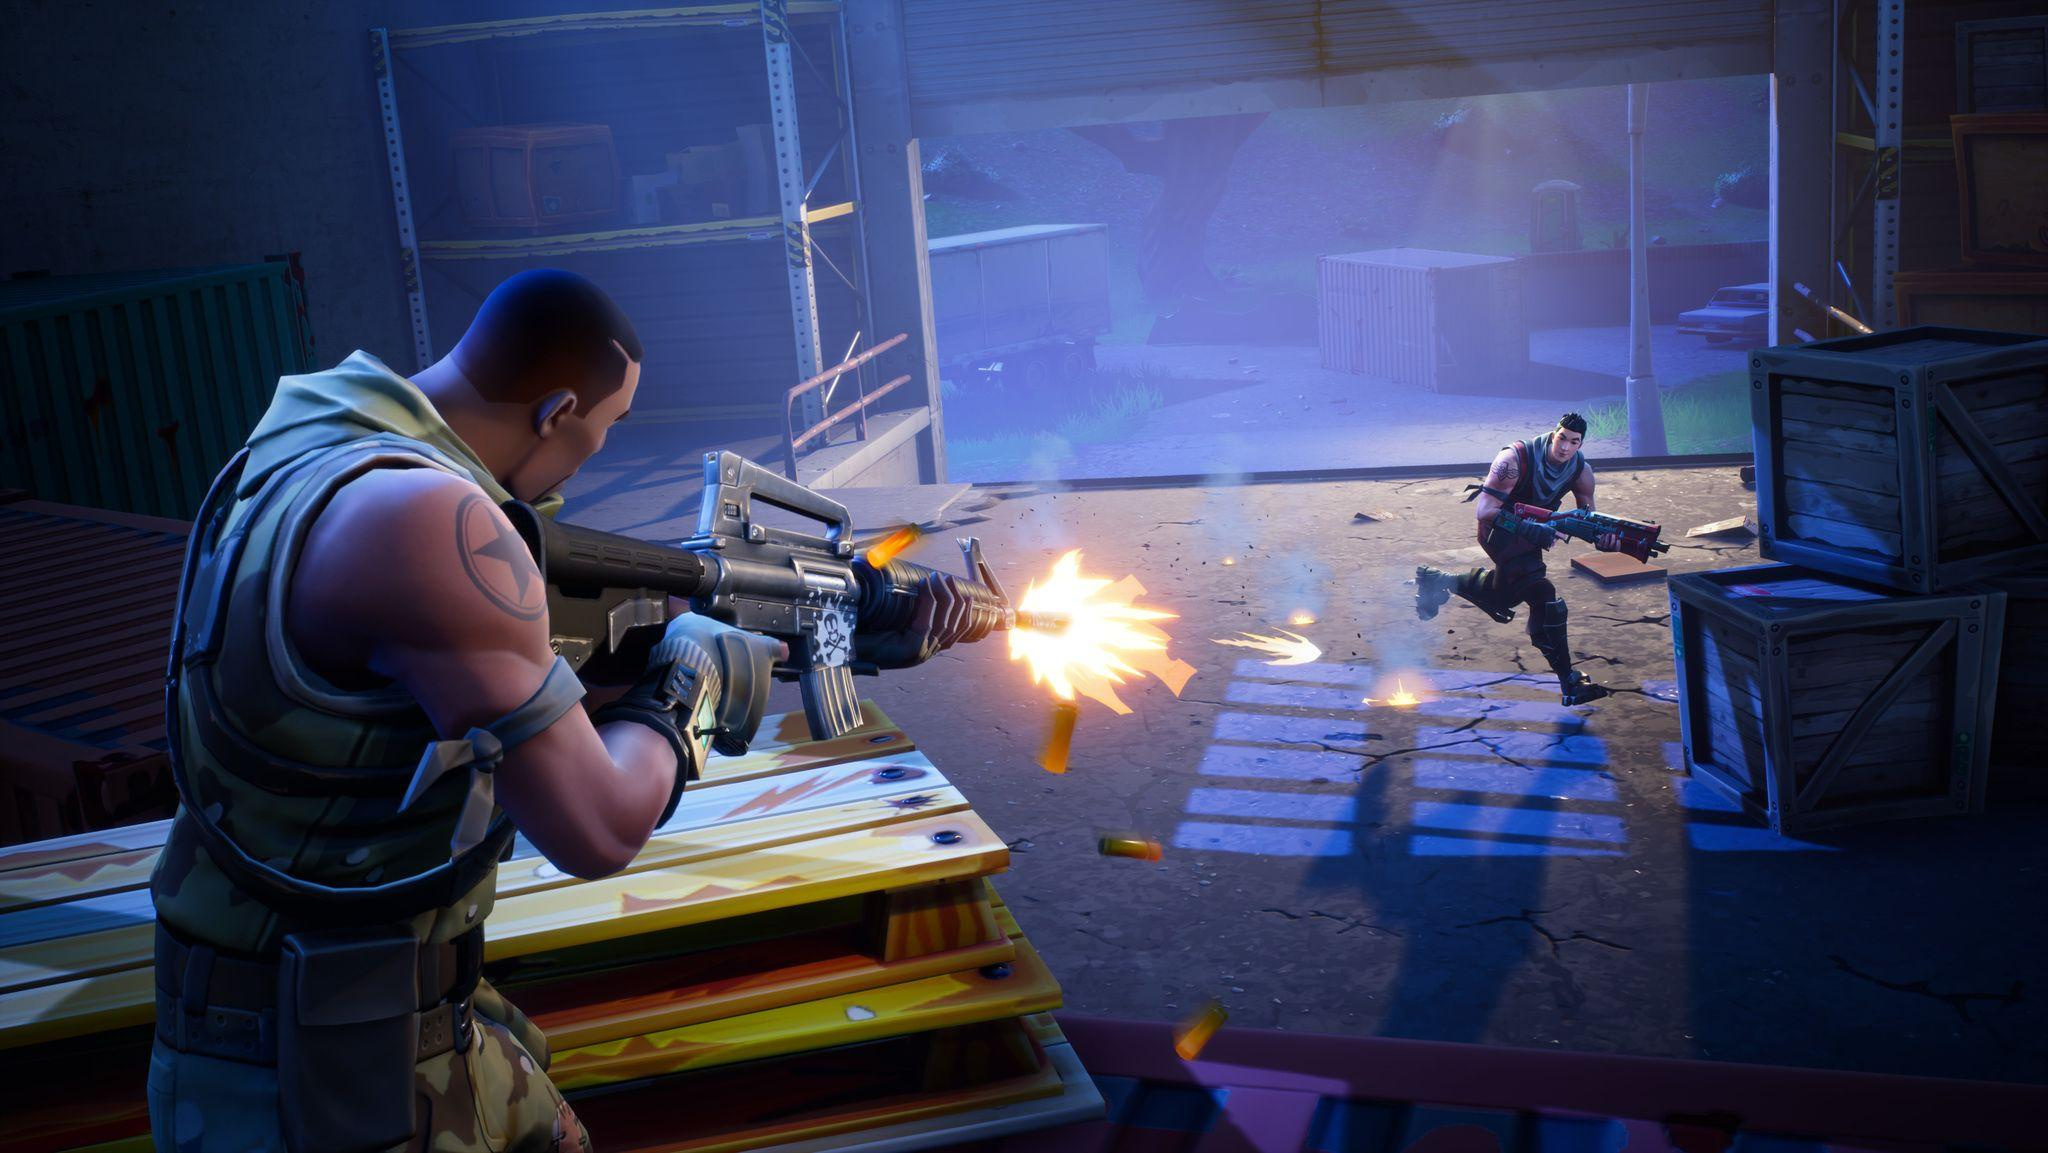 Fortnite Battle Royale' is coming to phones and tablets soon